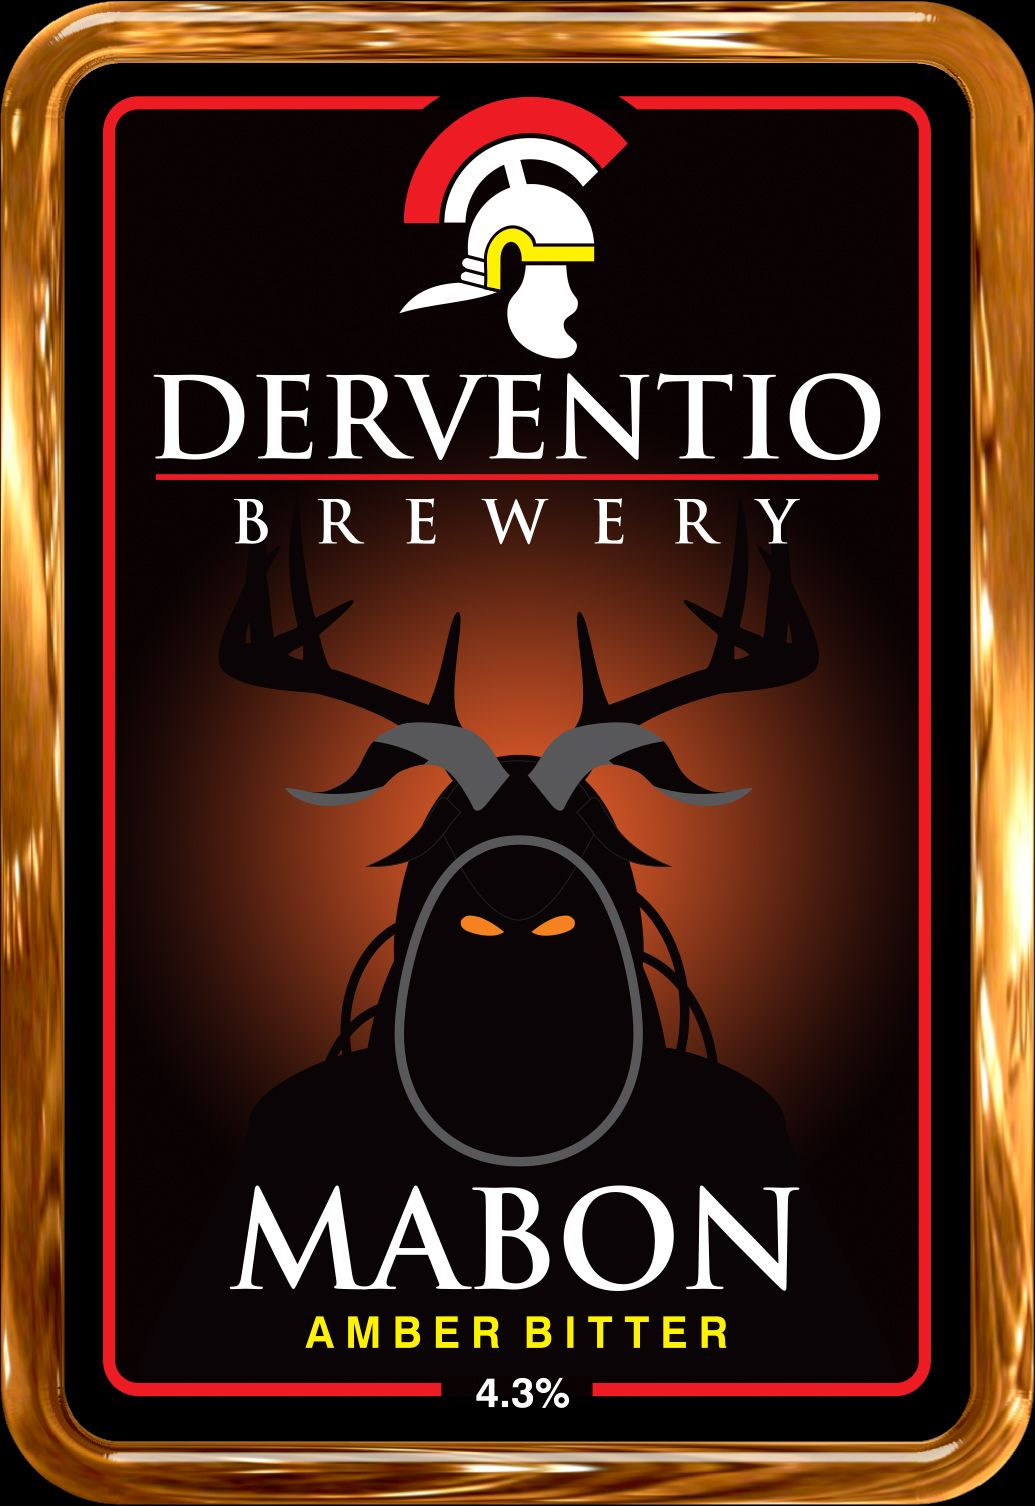 Another bottle label for Derventio... (With images) Beer